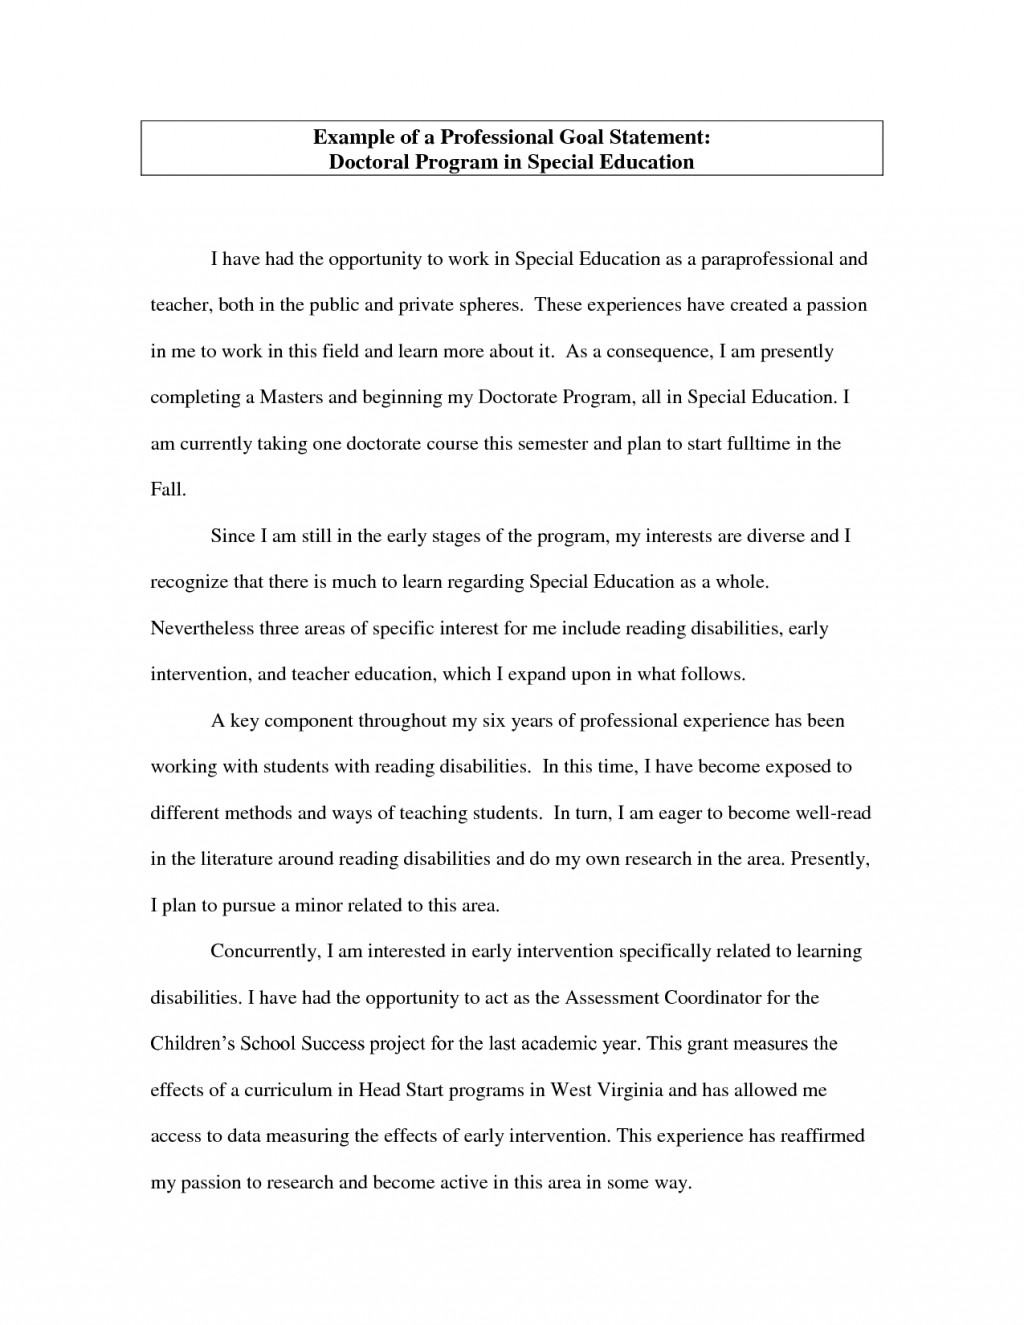 012 Career Goal Statement Zdxttkpg Essay Example Purpose Of Fearsome Education Pdf University Large